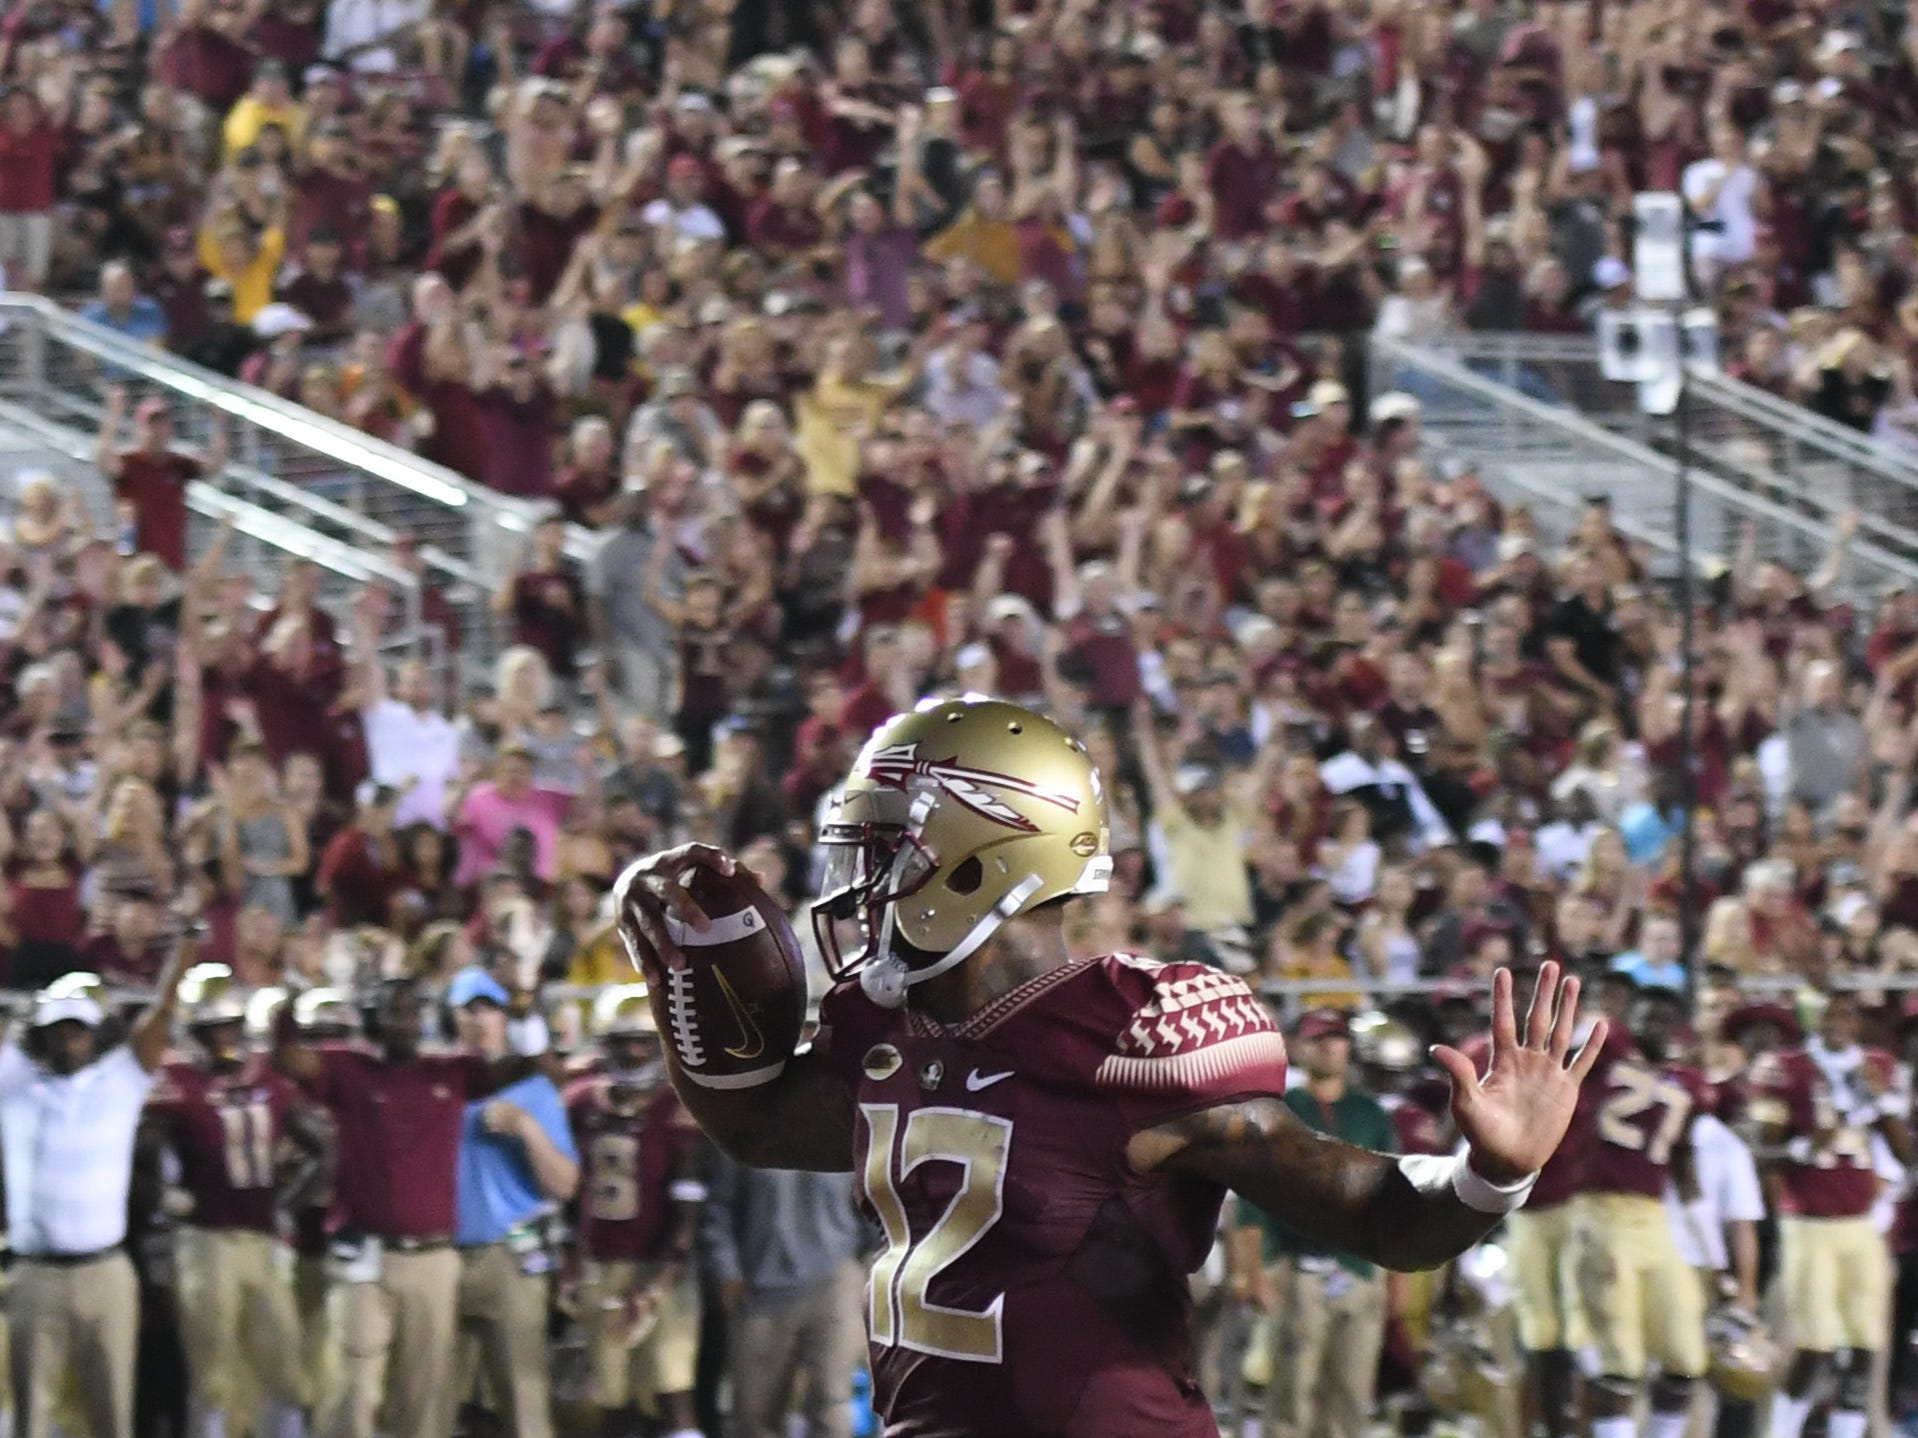 FSU redshirt junior Deondre Francois (12) scoring a touchdown on a quarterback sneak during the second quarter of FSU's matchup against Samford on Saturday night at Doak Campbell Stadium.